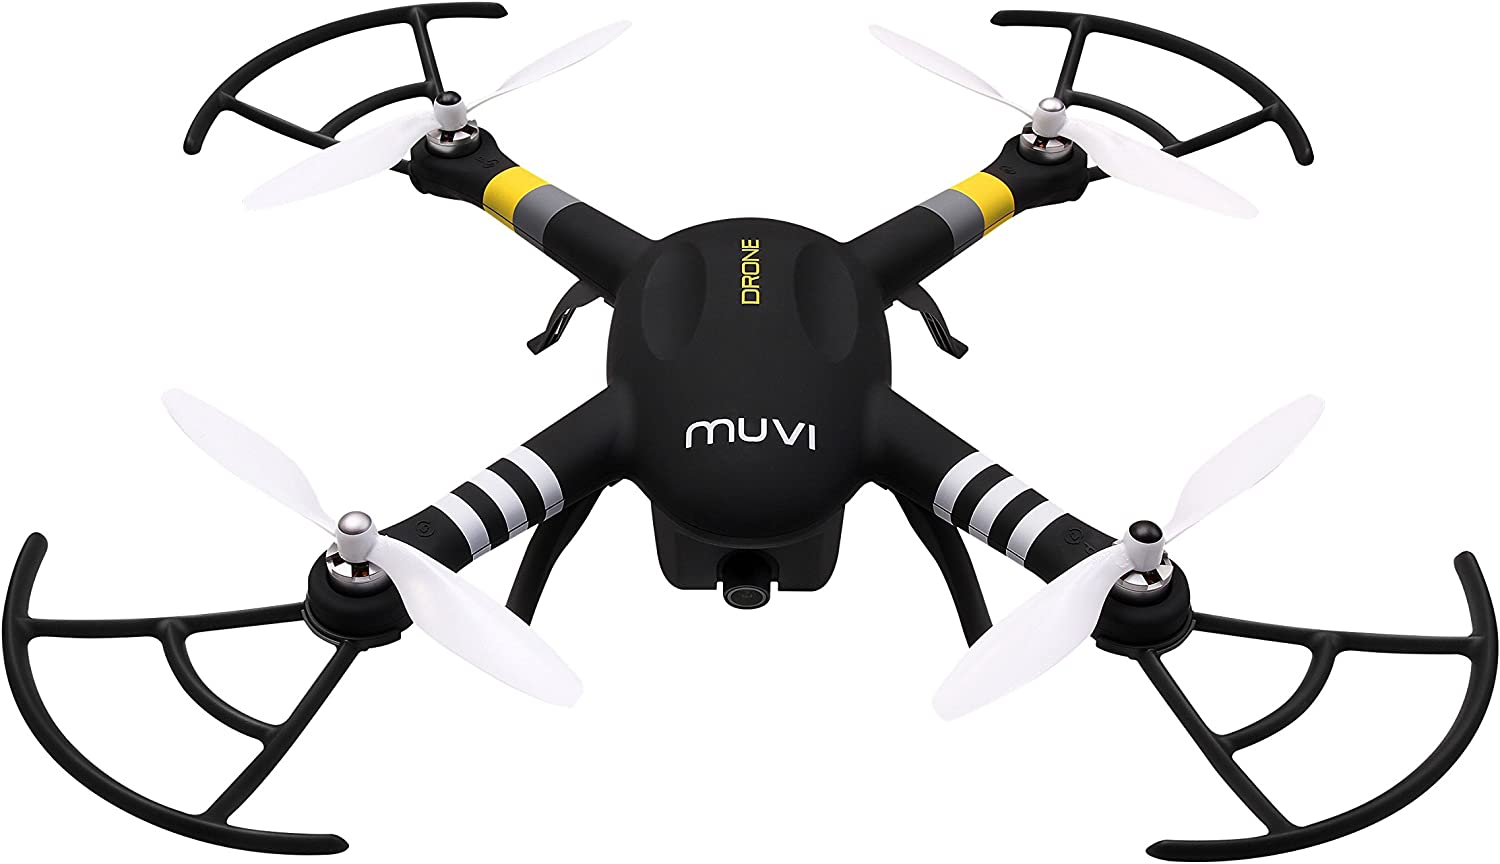 Amazon.com: Veho Muvi Drone UAV Quadcopter with 1080p HD built in camera, Satellite Navigation and Live view APP: Camera & Photo